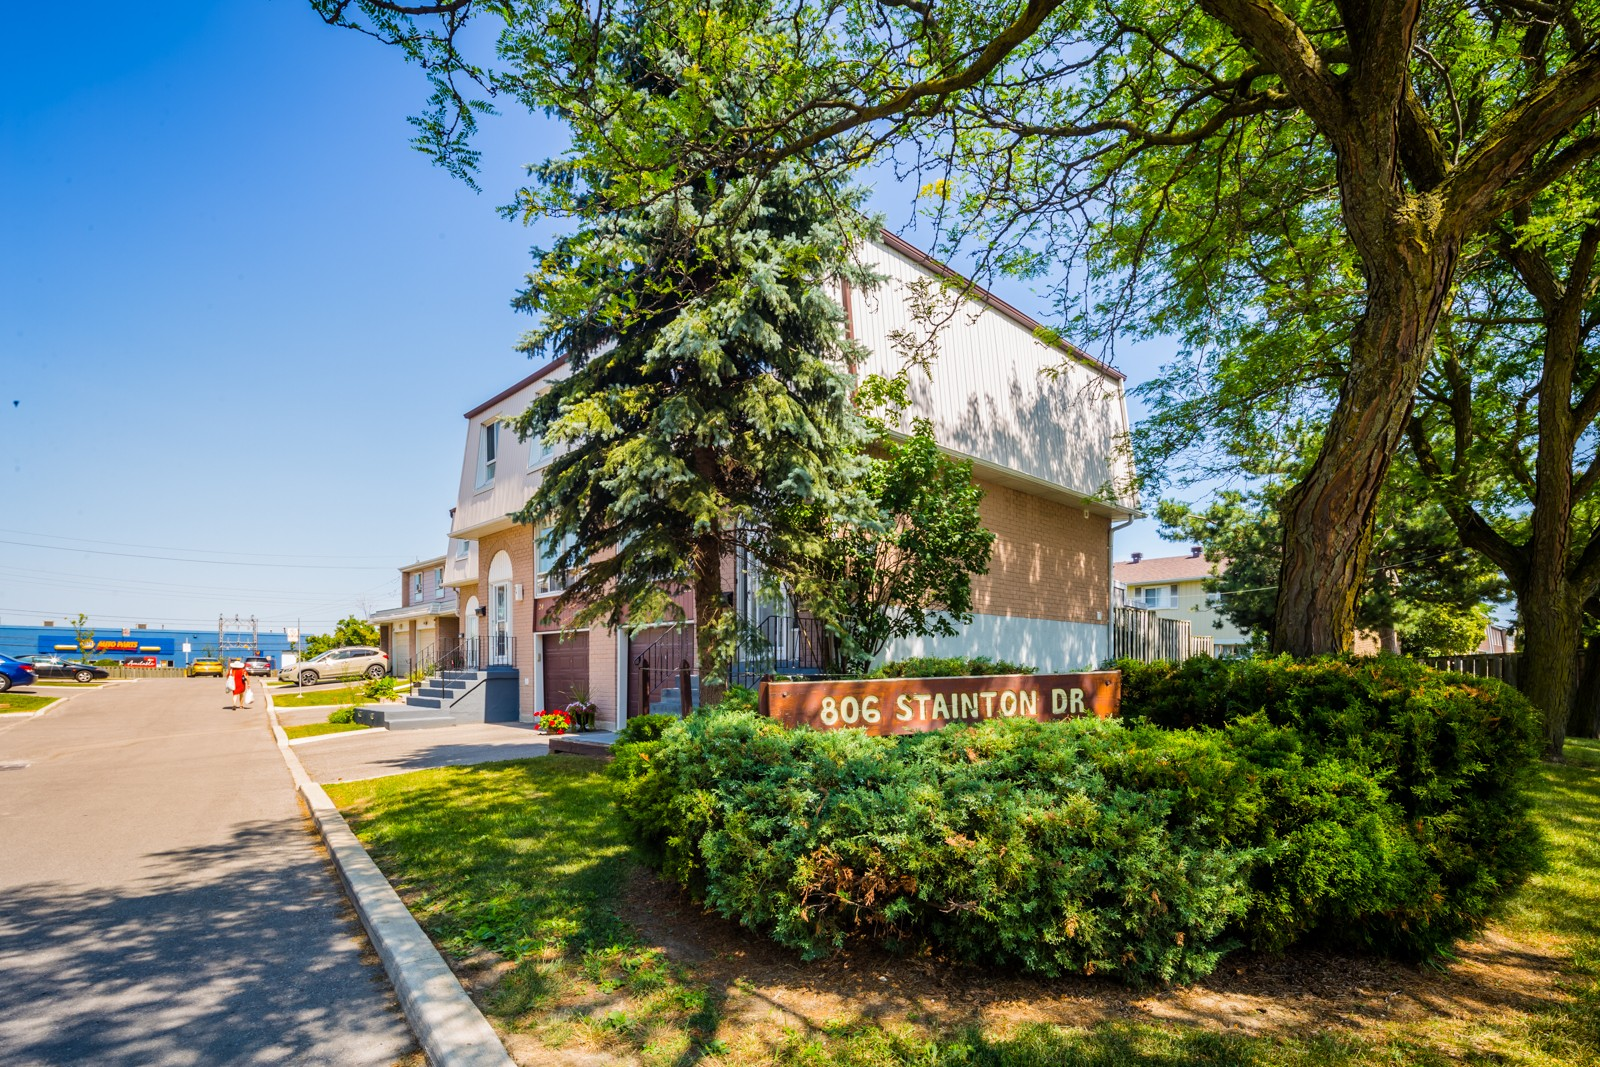 806 Stainton Townhouses at 806 Stainton Dr, Mississauga 0